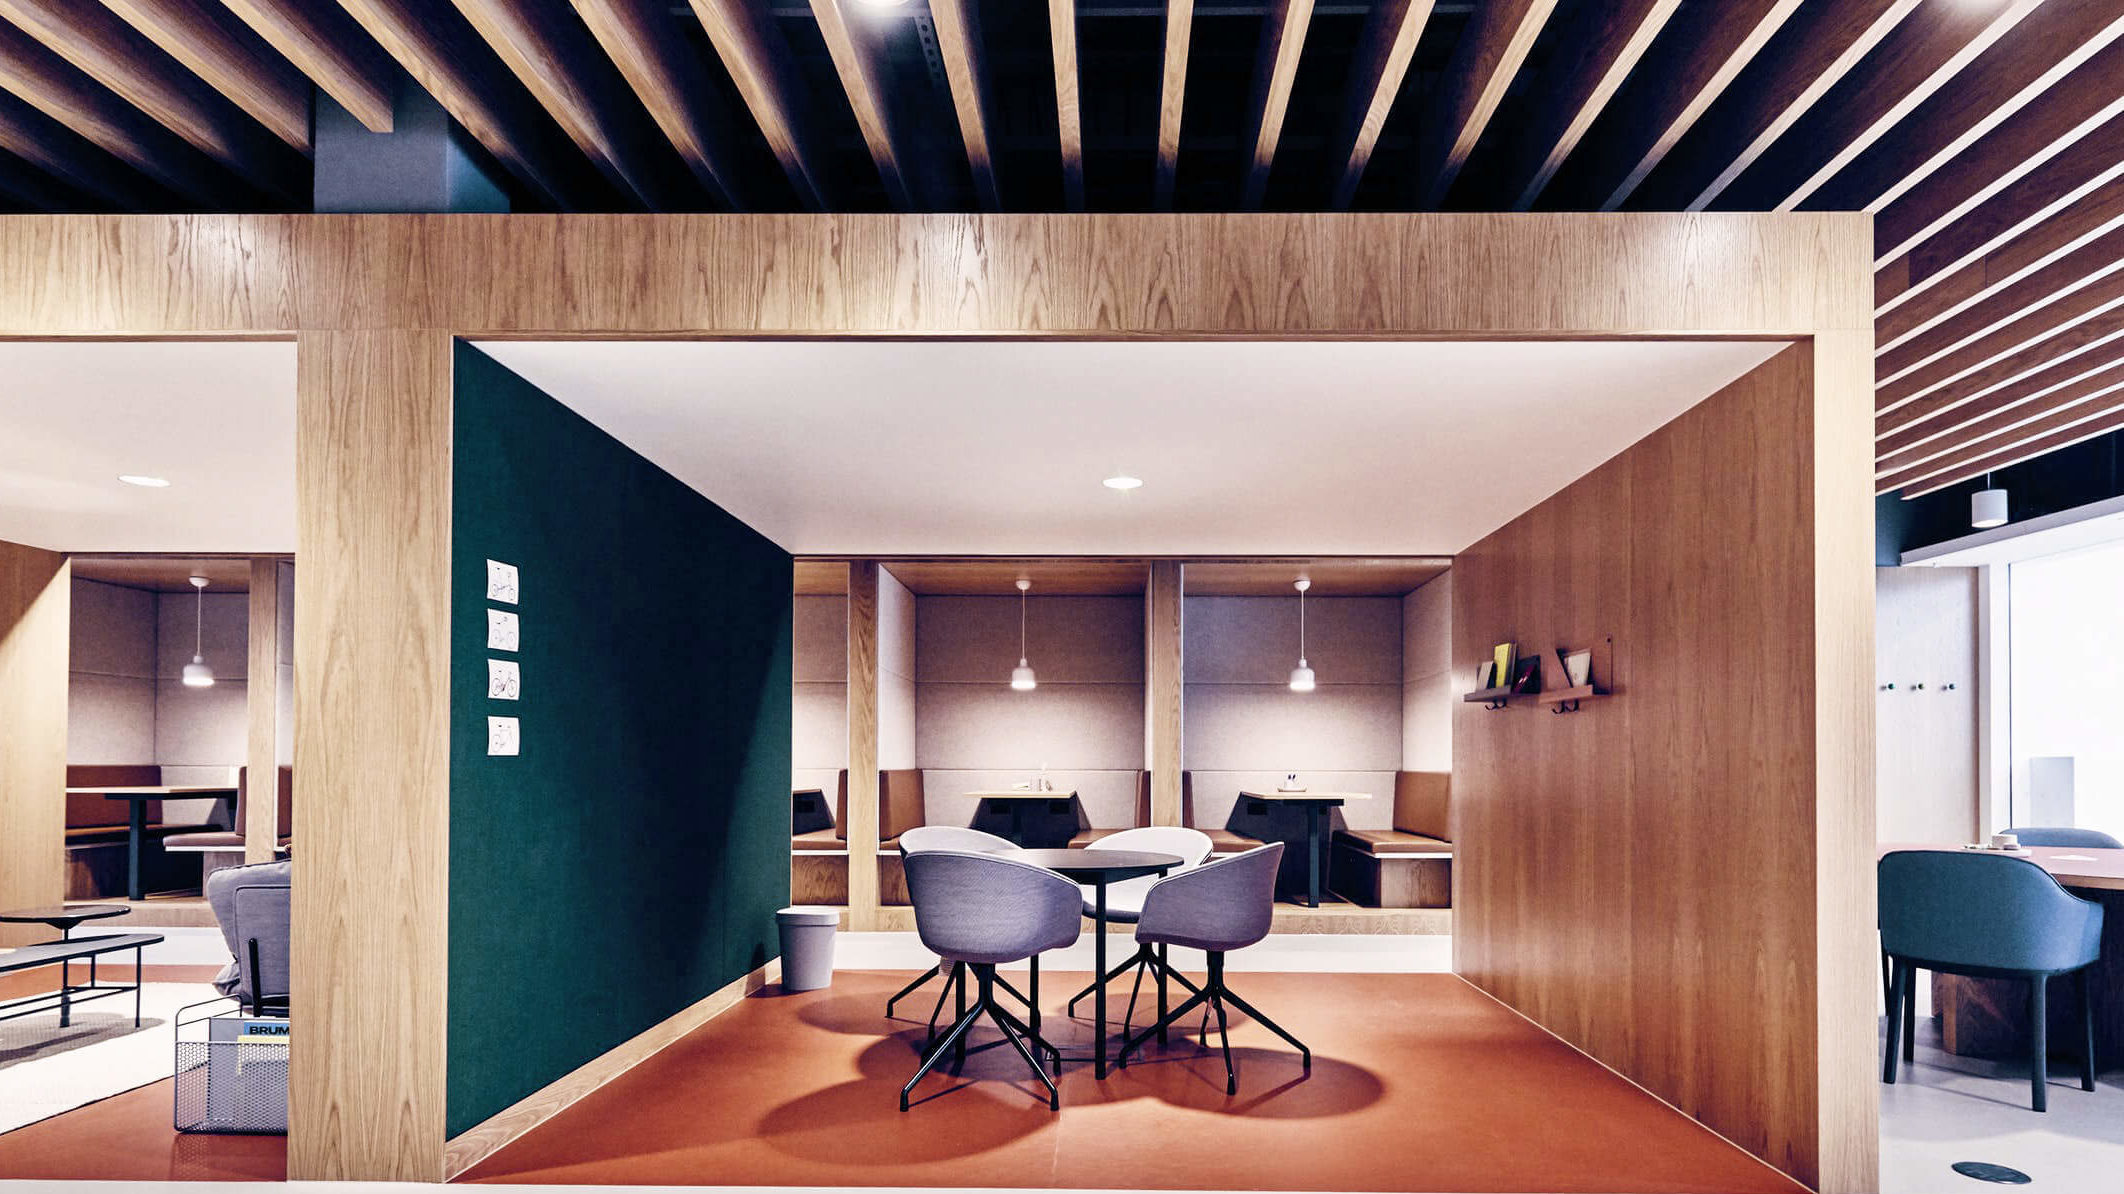 An architecturally designed office breakout space with desks and booths